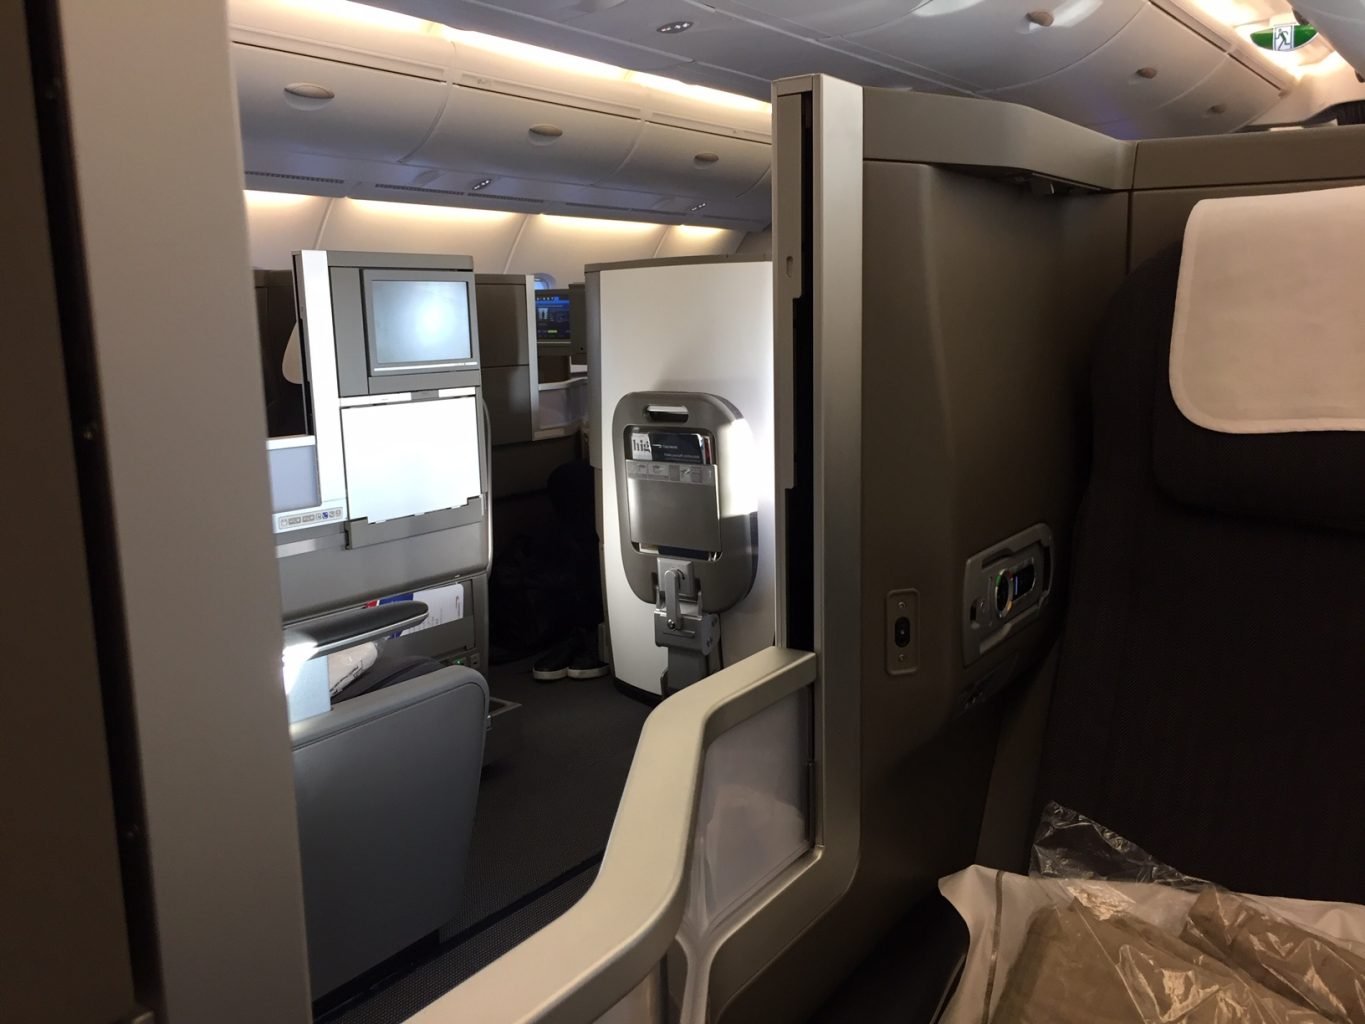 Sehr günstig Business Class in die USA